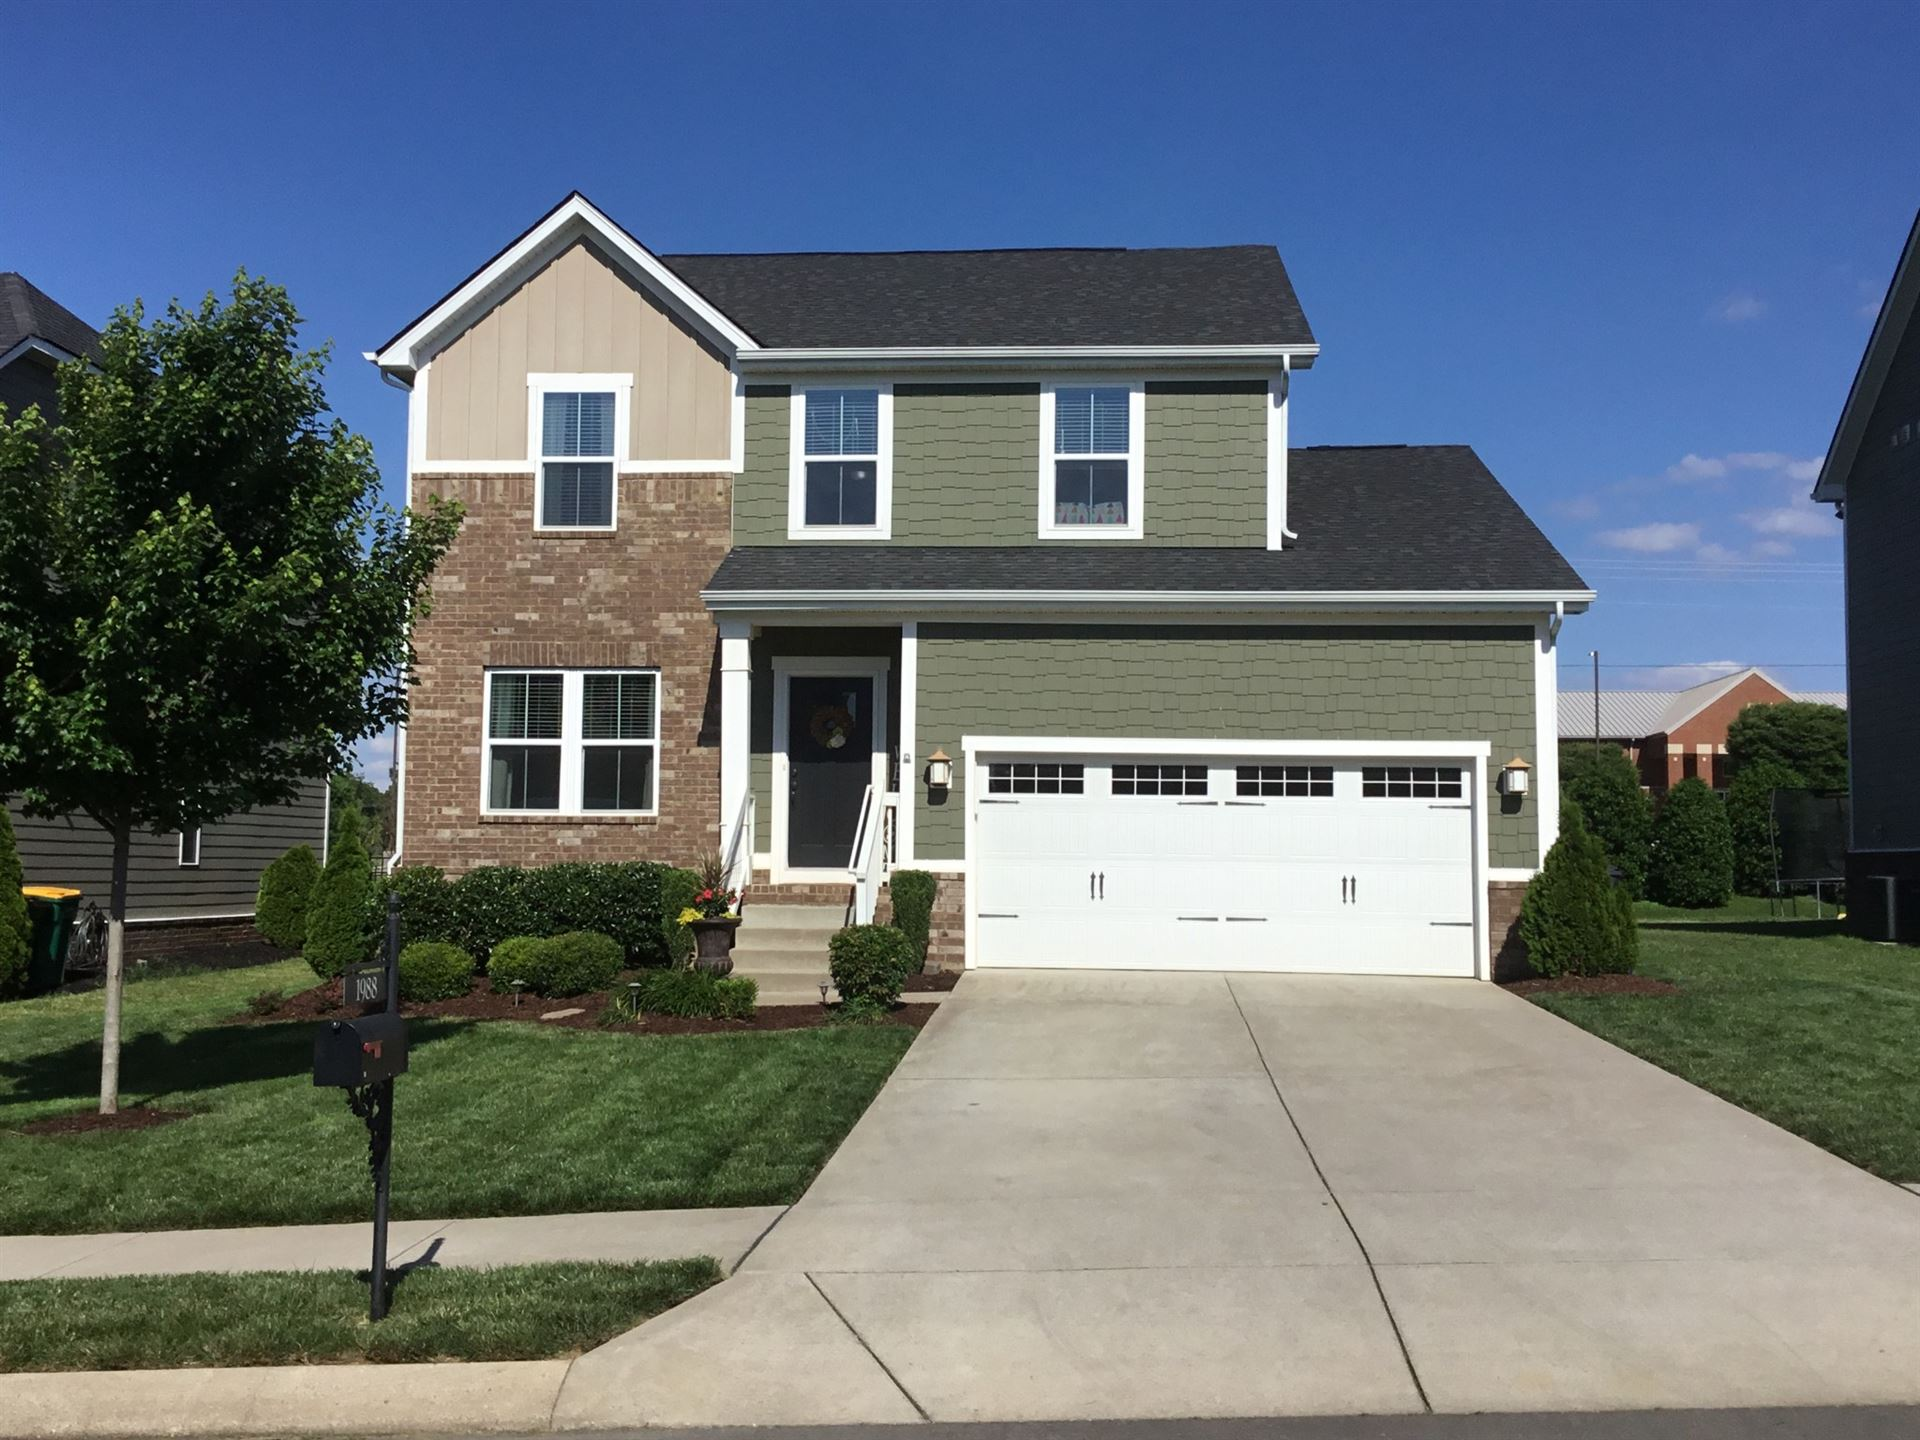 Photo of 1988 Allerton Way, Spring Hill, TN 37174 (MLS # 2155480)